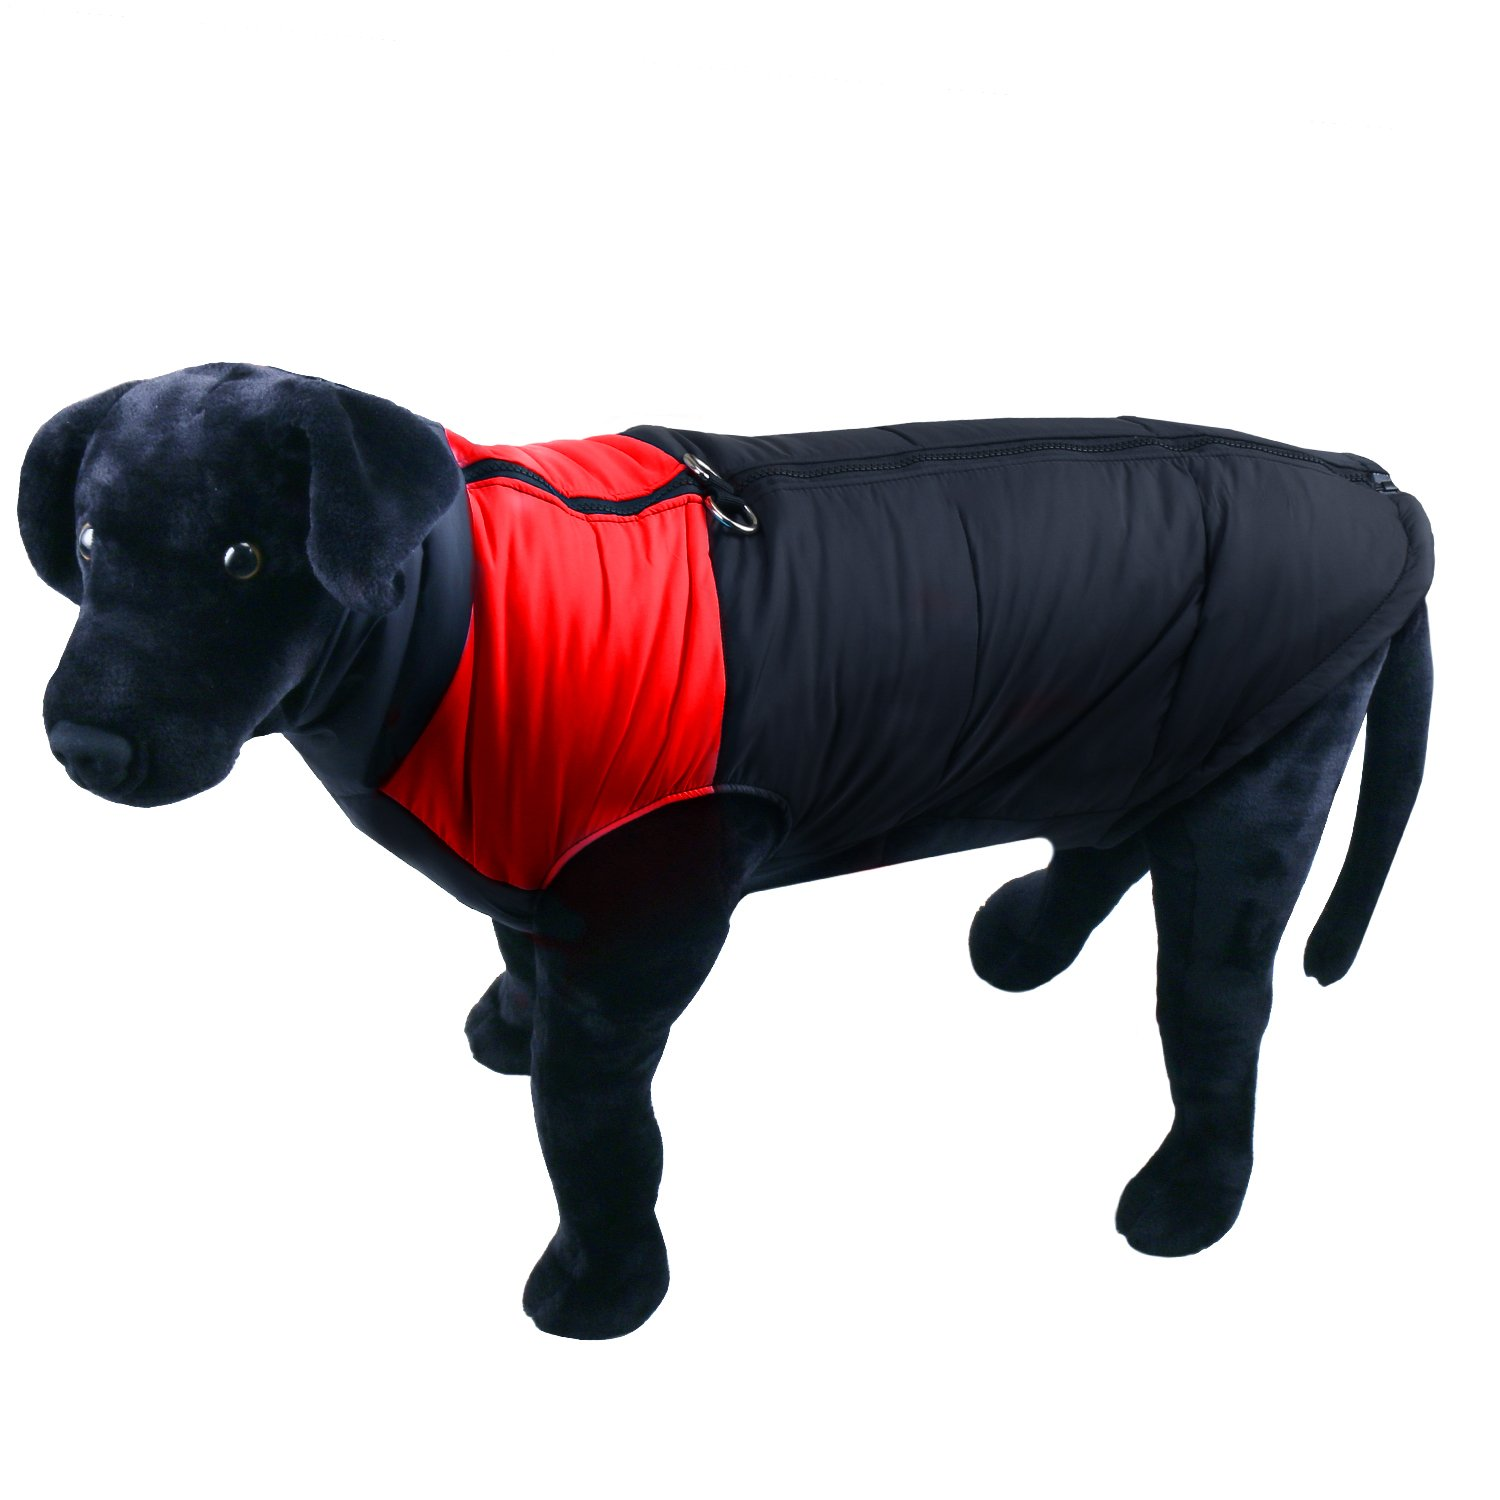 Red L-L(Chest 25.1\ Red L-L(Chest 25.1\ RilexAwhile Dog Warm Jacket, Ultra Light Soft Waterproof Windproof Thickening Cotton-Padded Winter Dog Coat Dog Rain Jacket Vet with One-Zip Setup for Large Dog (L-L(Chest 25.1 ), Red)